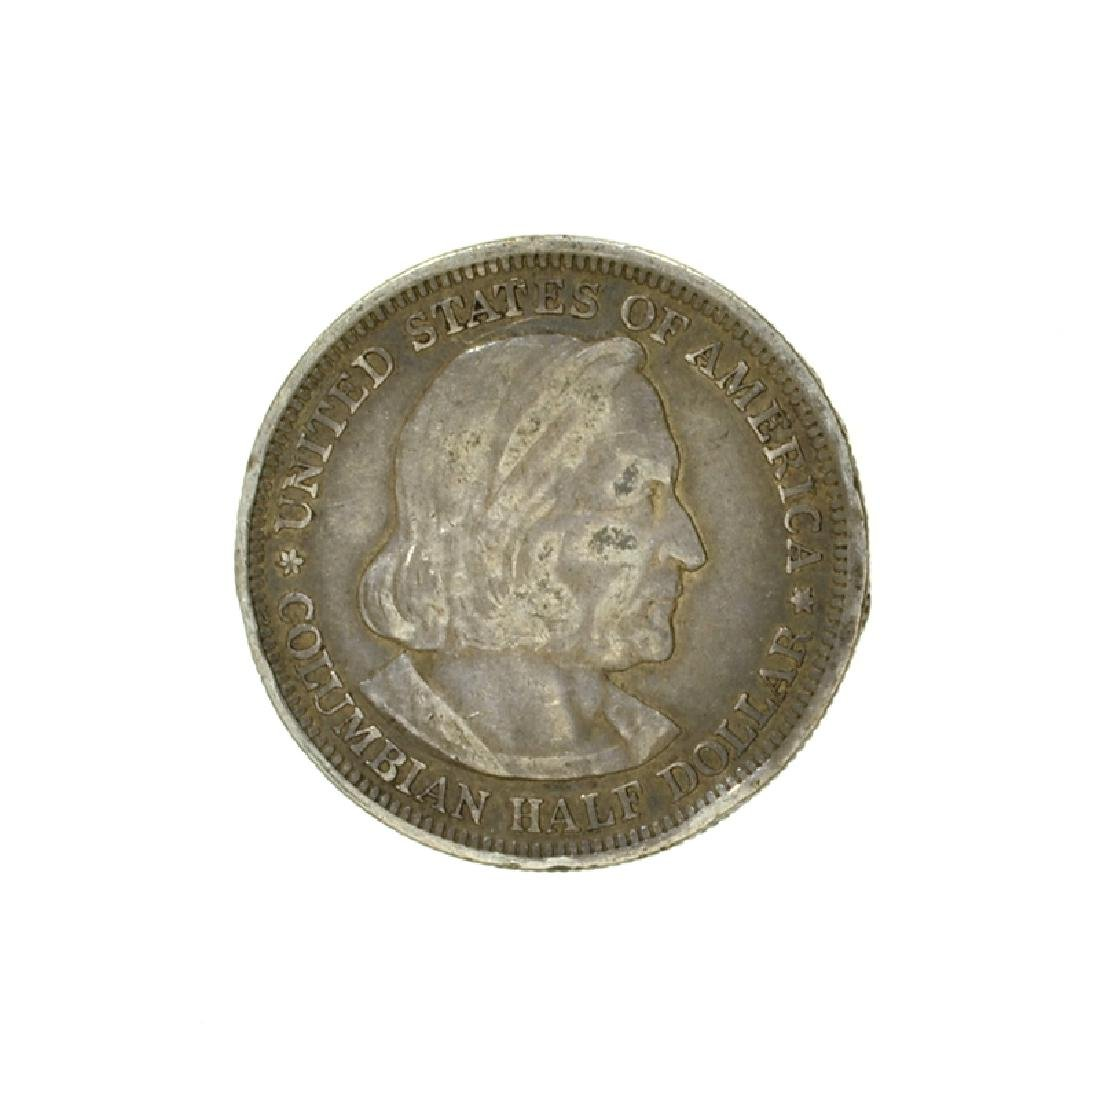 1893 Columbian Commemorative Half Dollar Coin